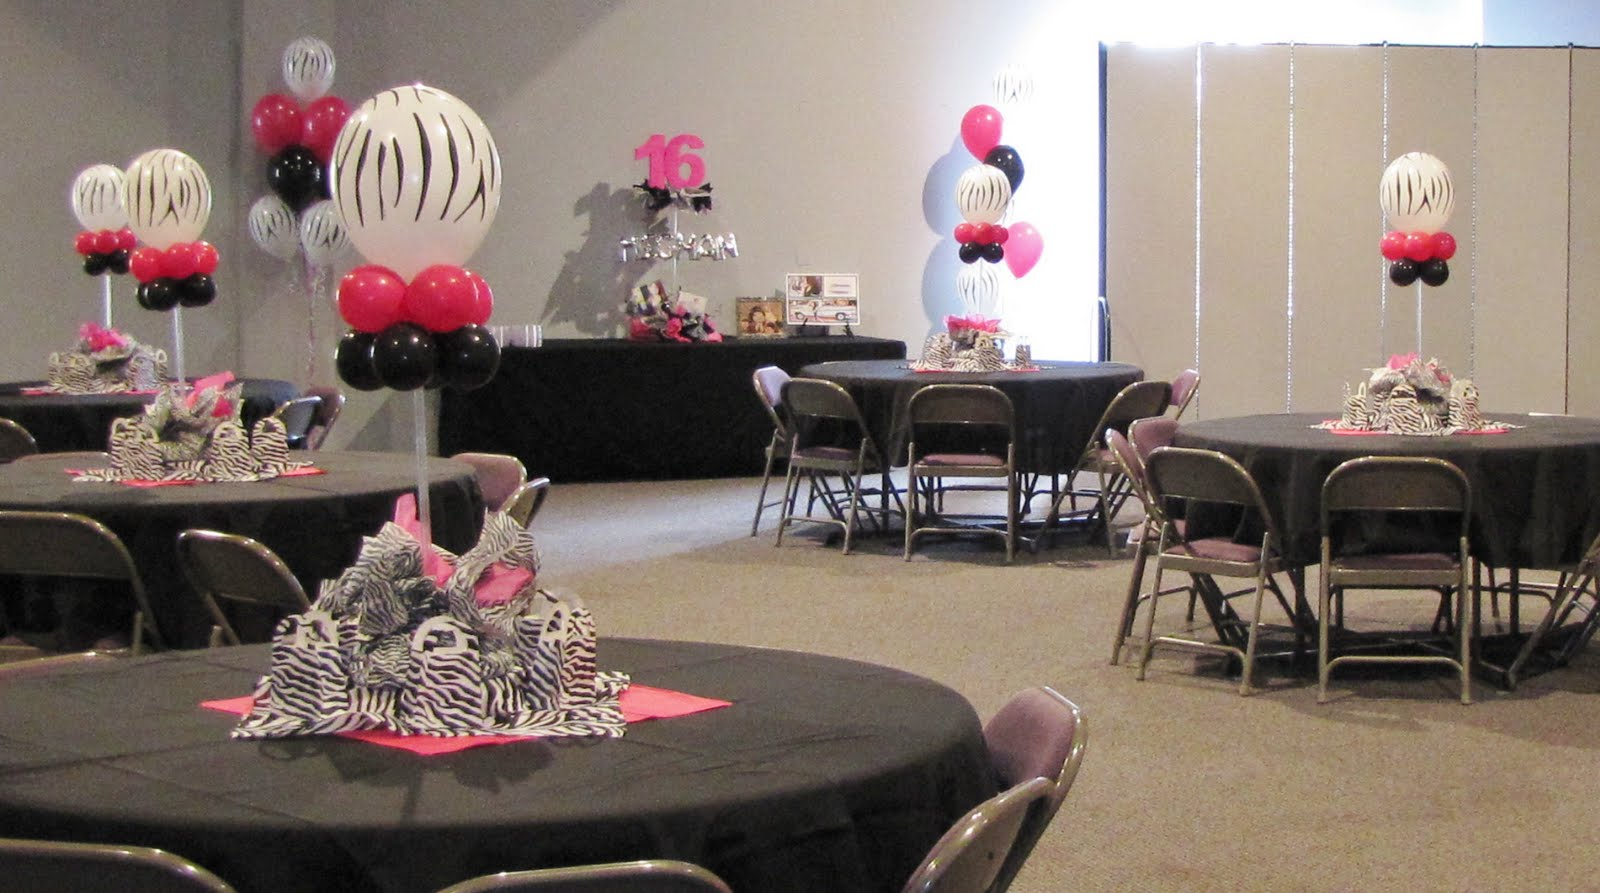 Airfilled centerpieces were placed on the 6 guest tables with Zebra